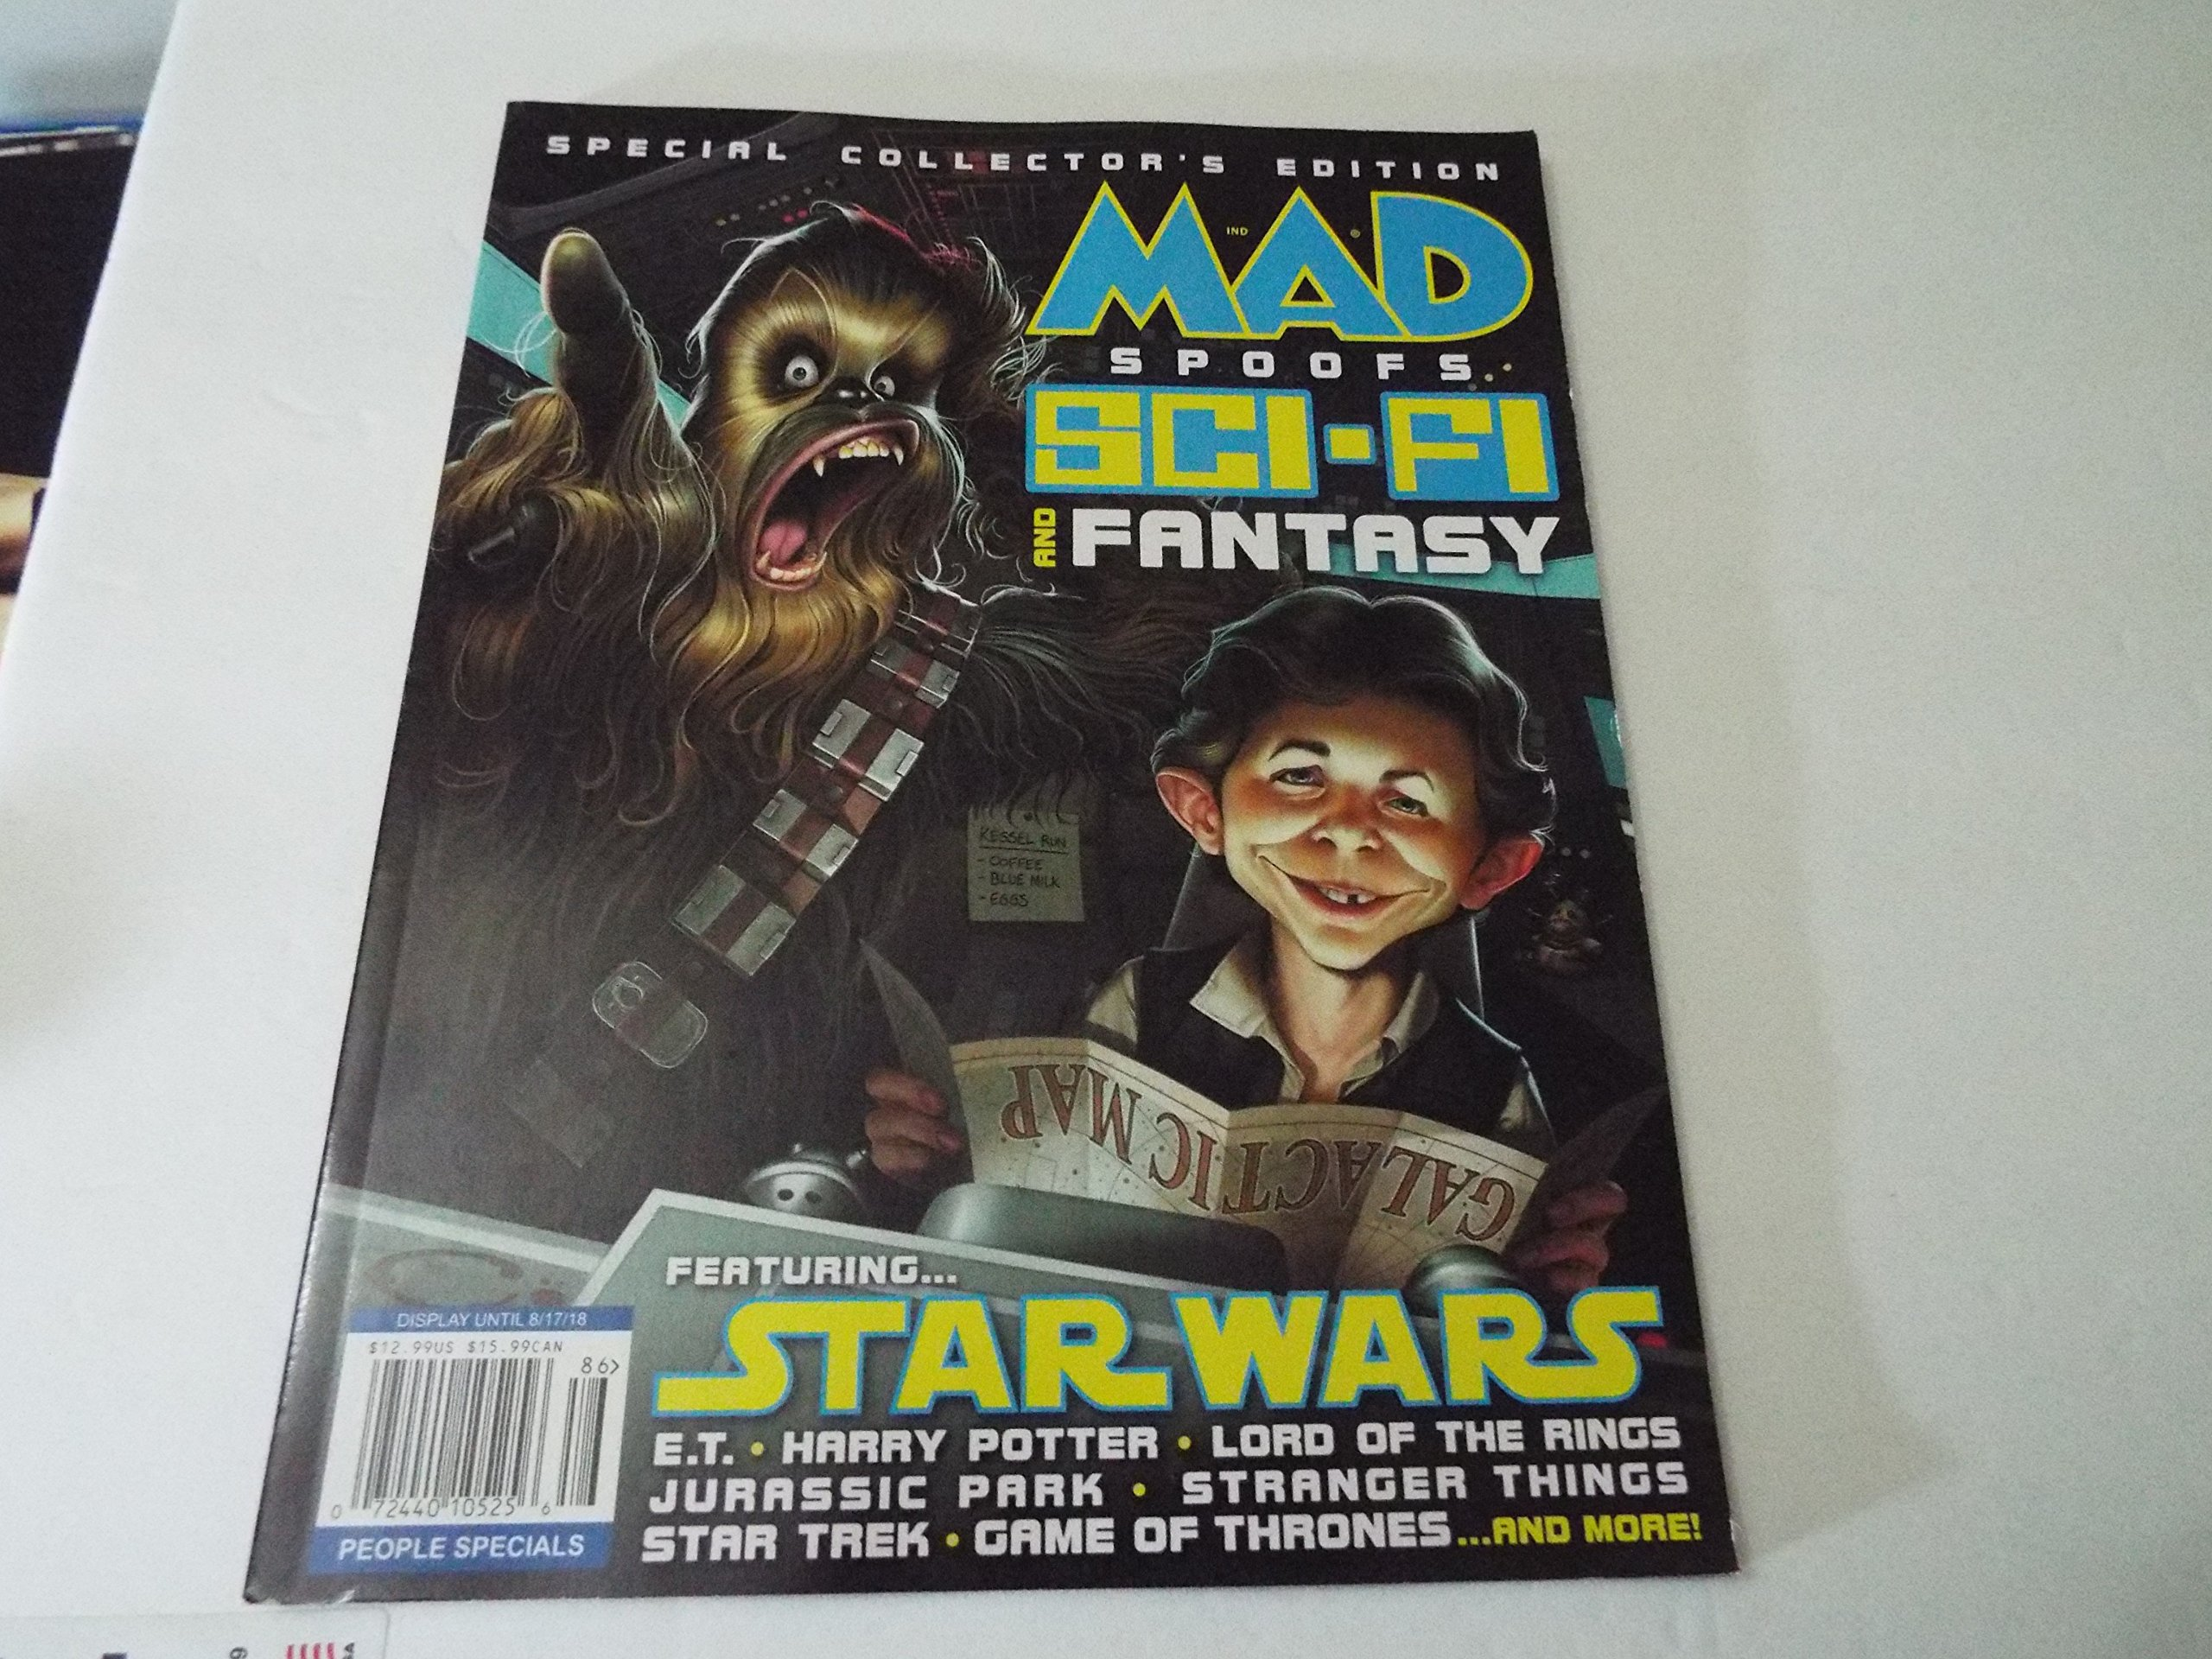 Read Online Mad Magazine Spoofs Sci-Fi and Fantasy Featuring Star Wars ebook